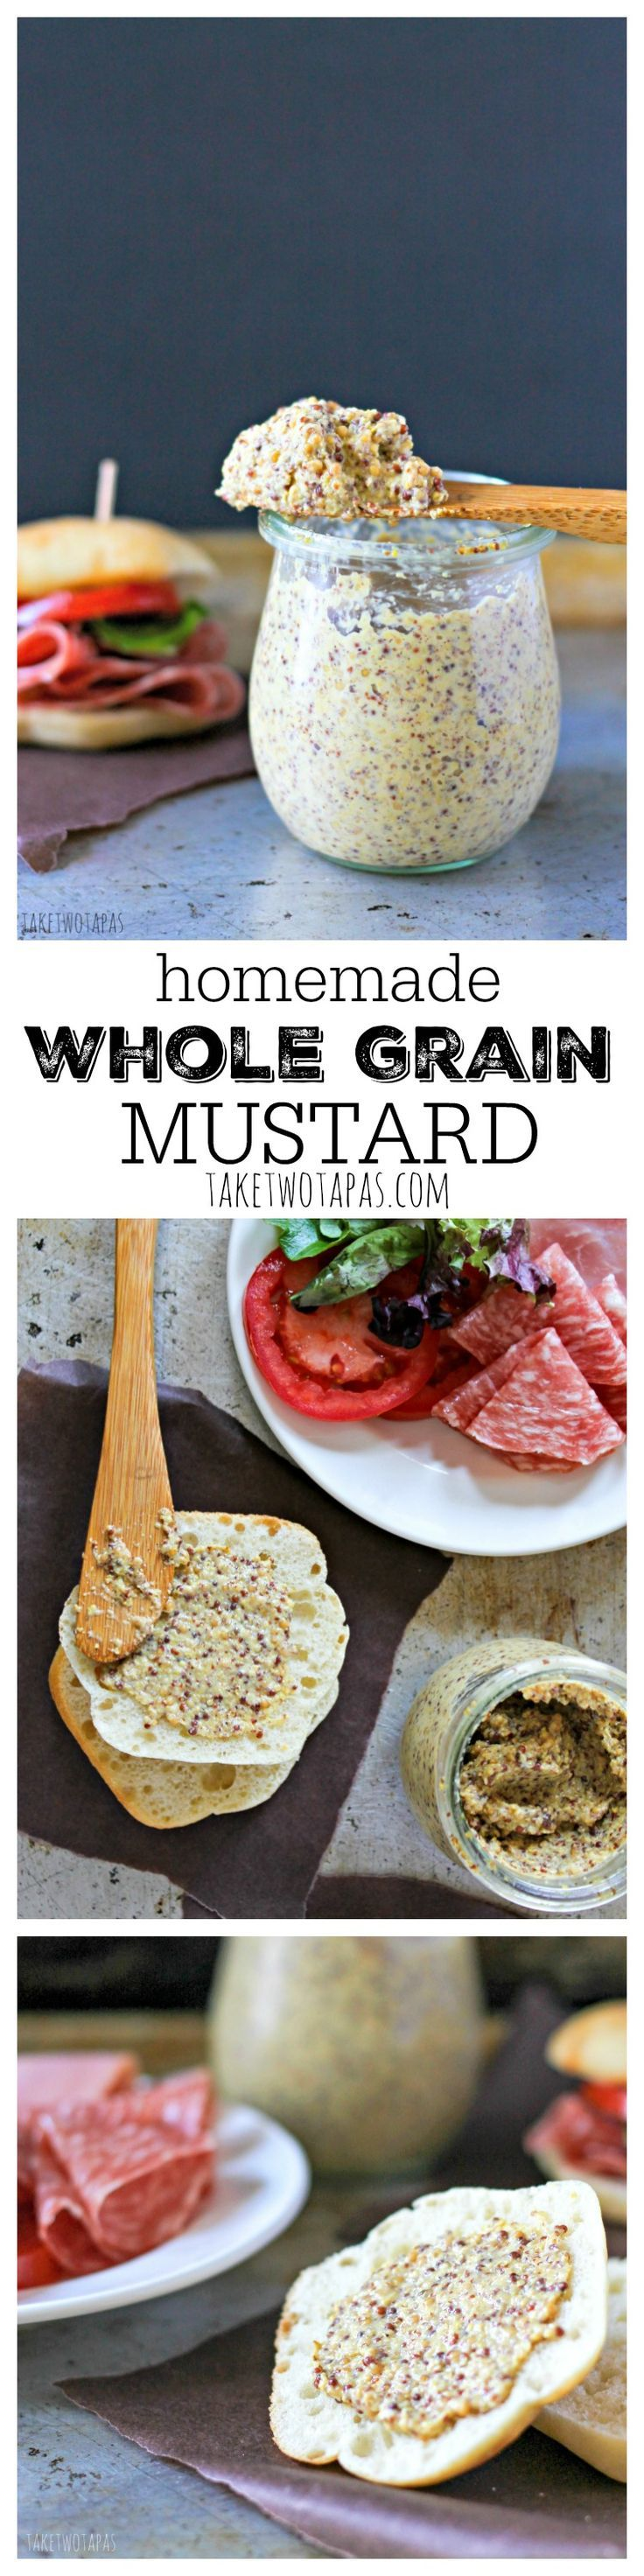 Easy mustard recipe homemade